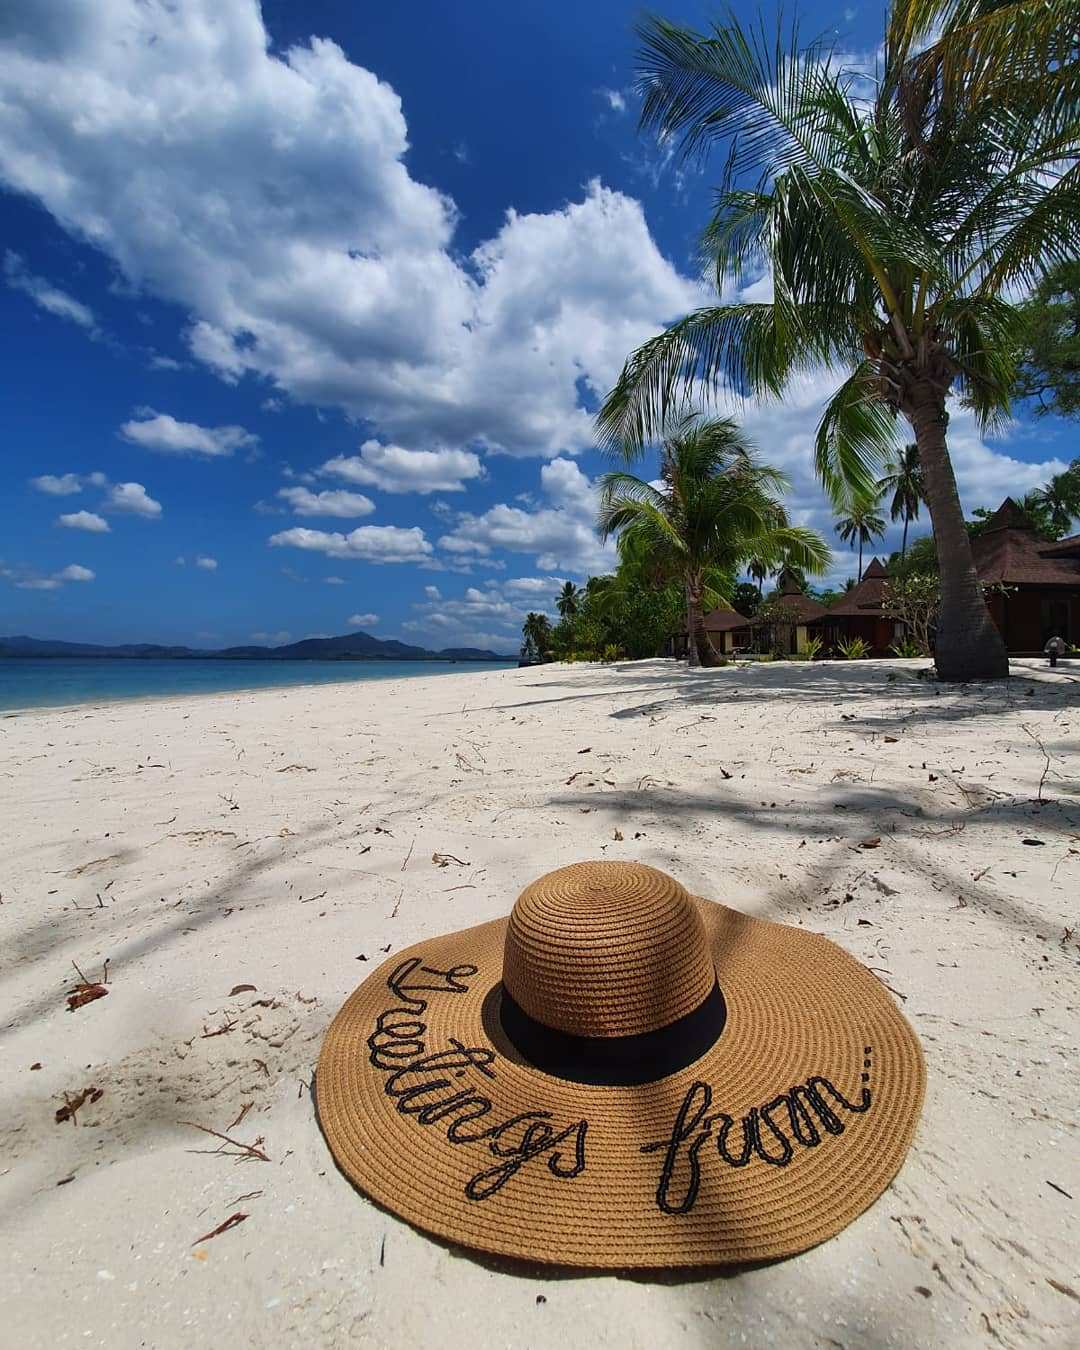 A hat on the beach of Koh Mook